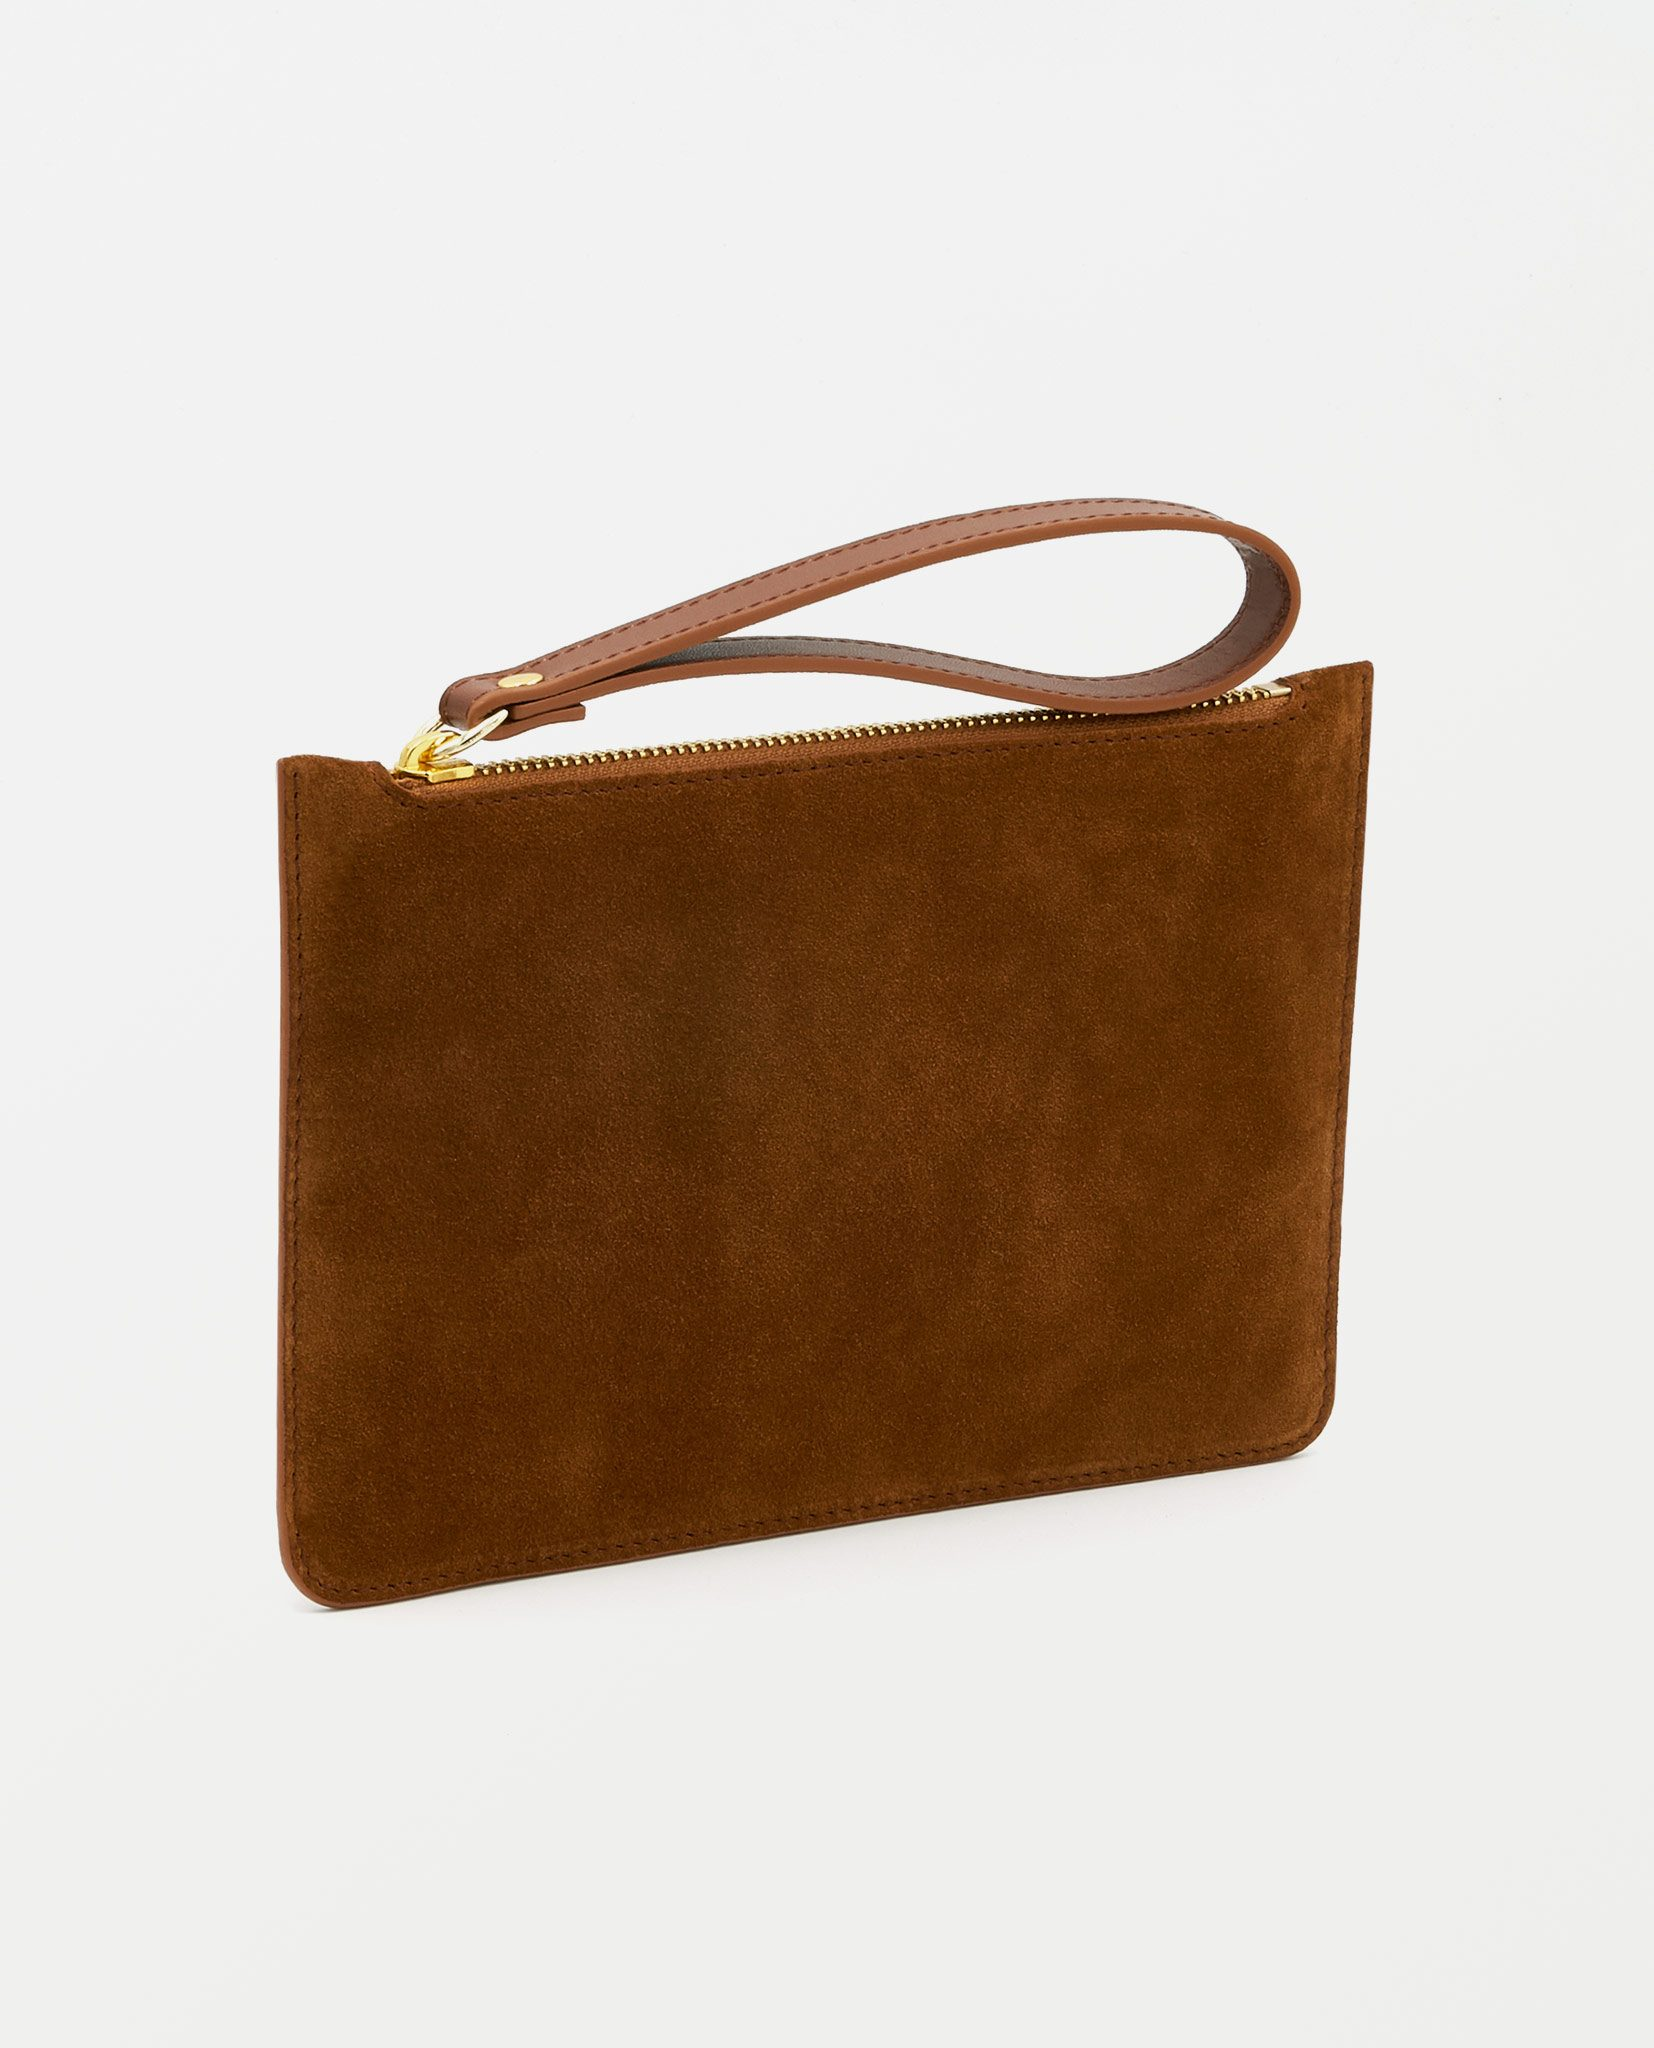 Soofre Small Suede Leather Pouch Tan